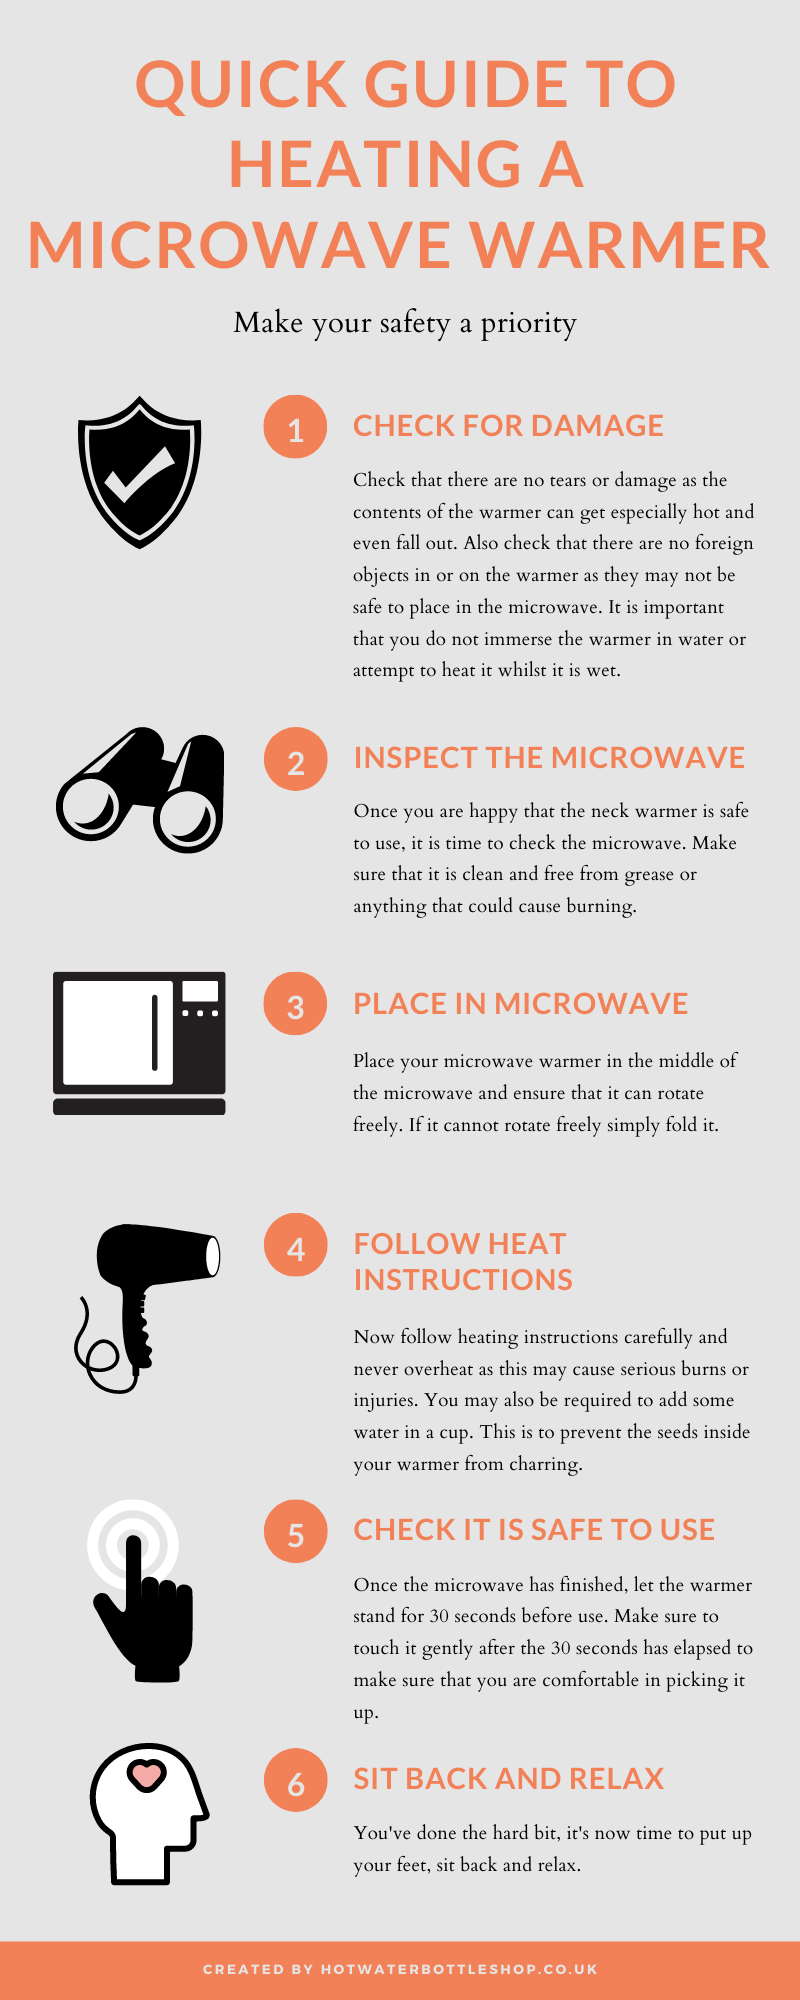 Quick guide to heating your microwave hot water bottle safely